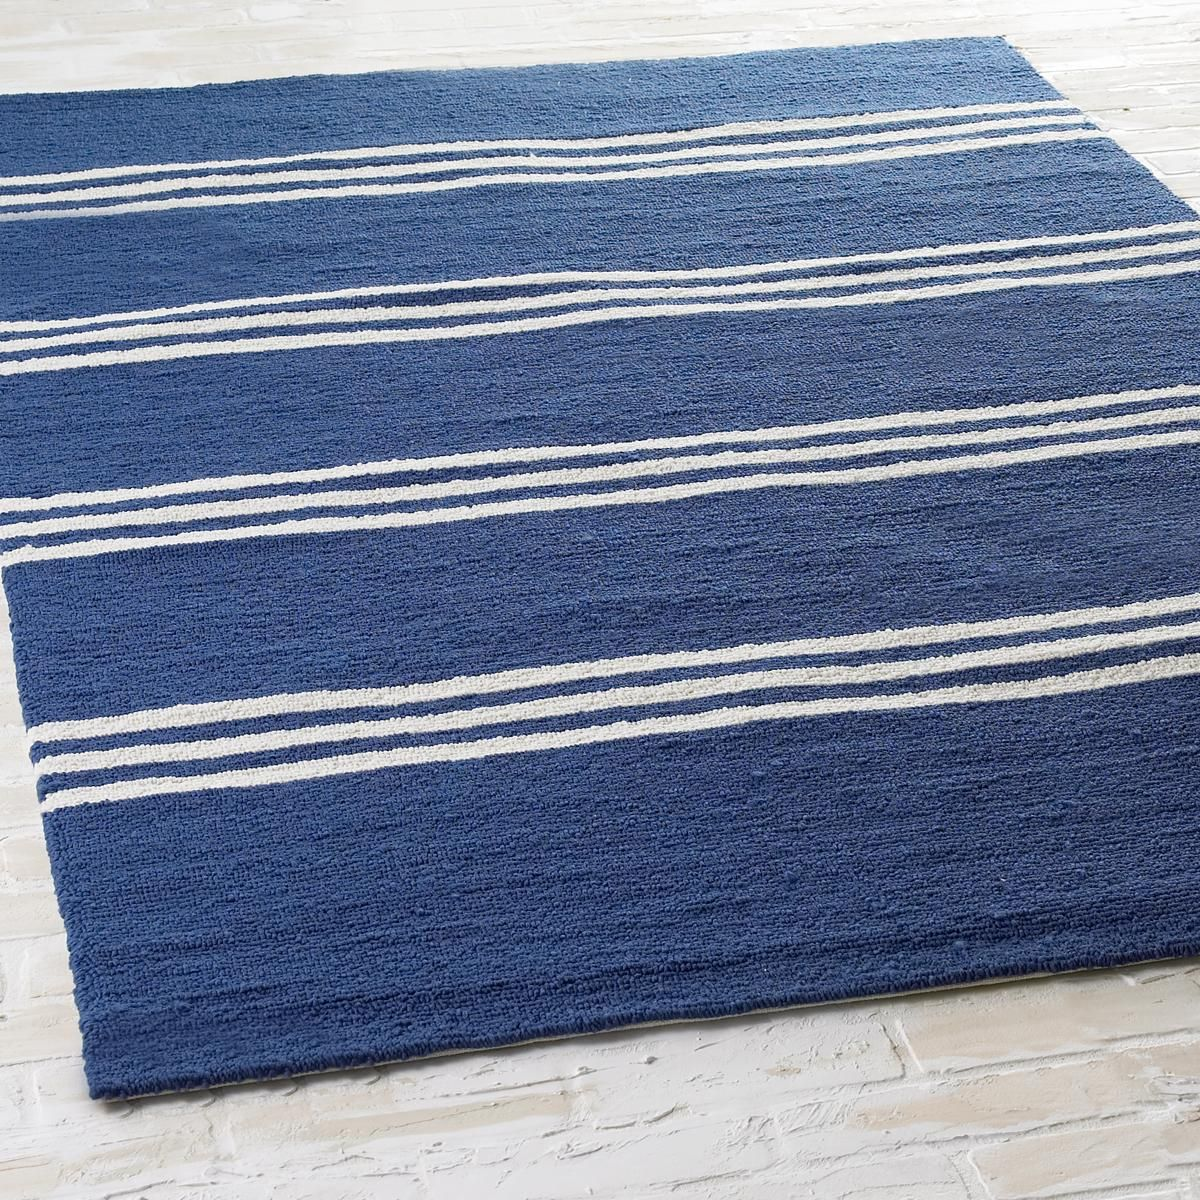 Round Navy Striped Rug Area Rug Ideas